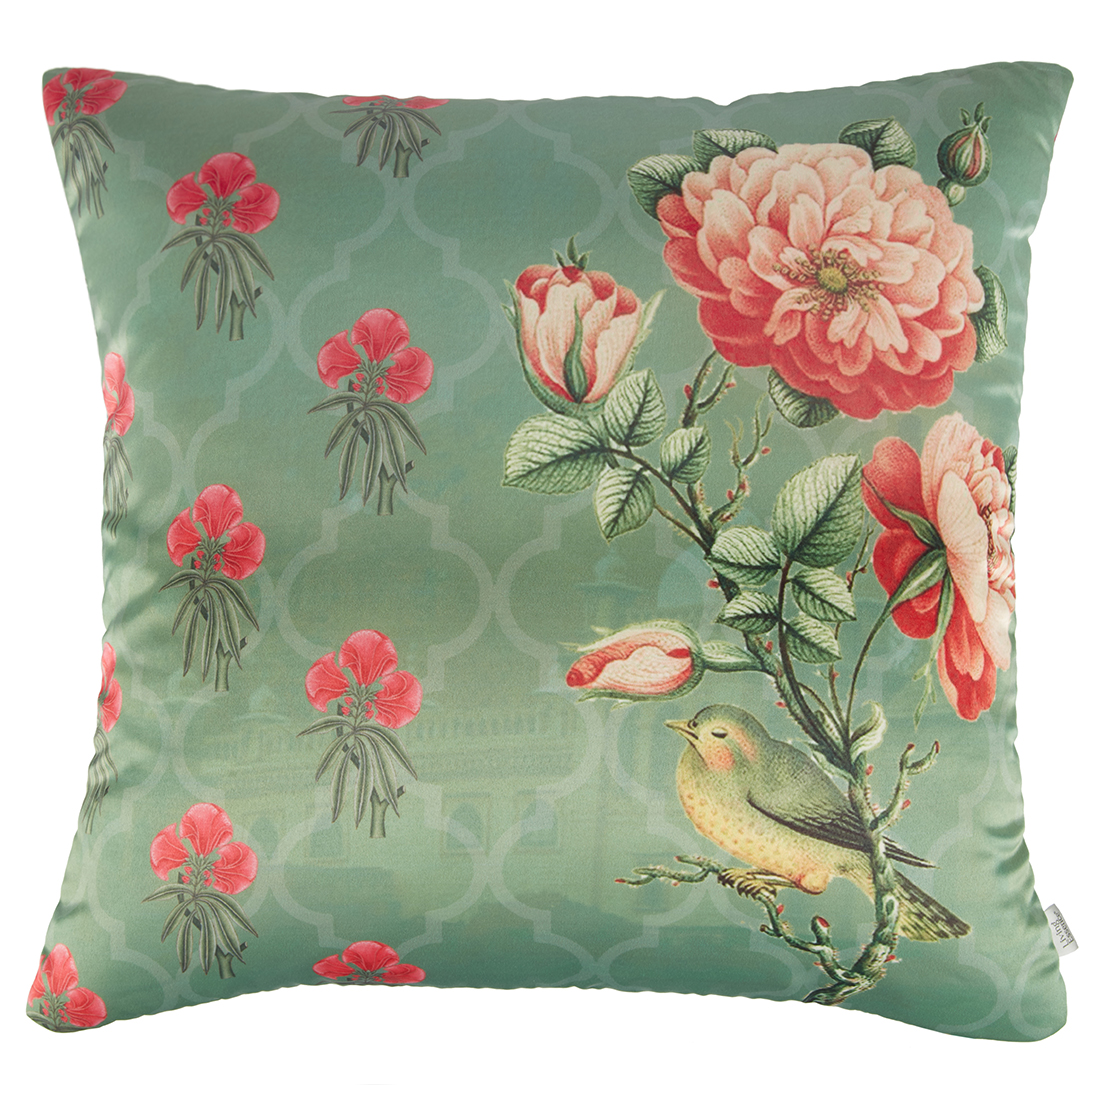 Digital Cushion Cover Floral Bunch Cushion Covers in Poly Satin Colour by Living Essence